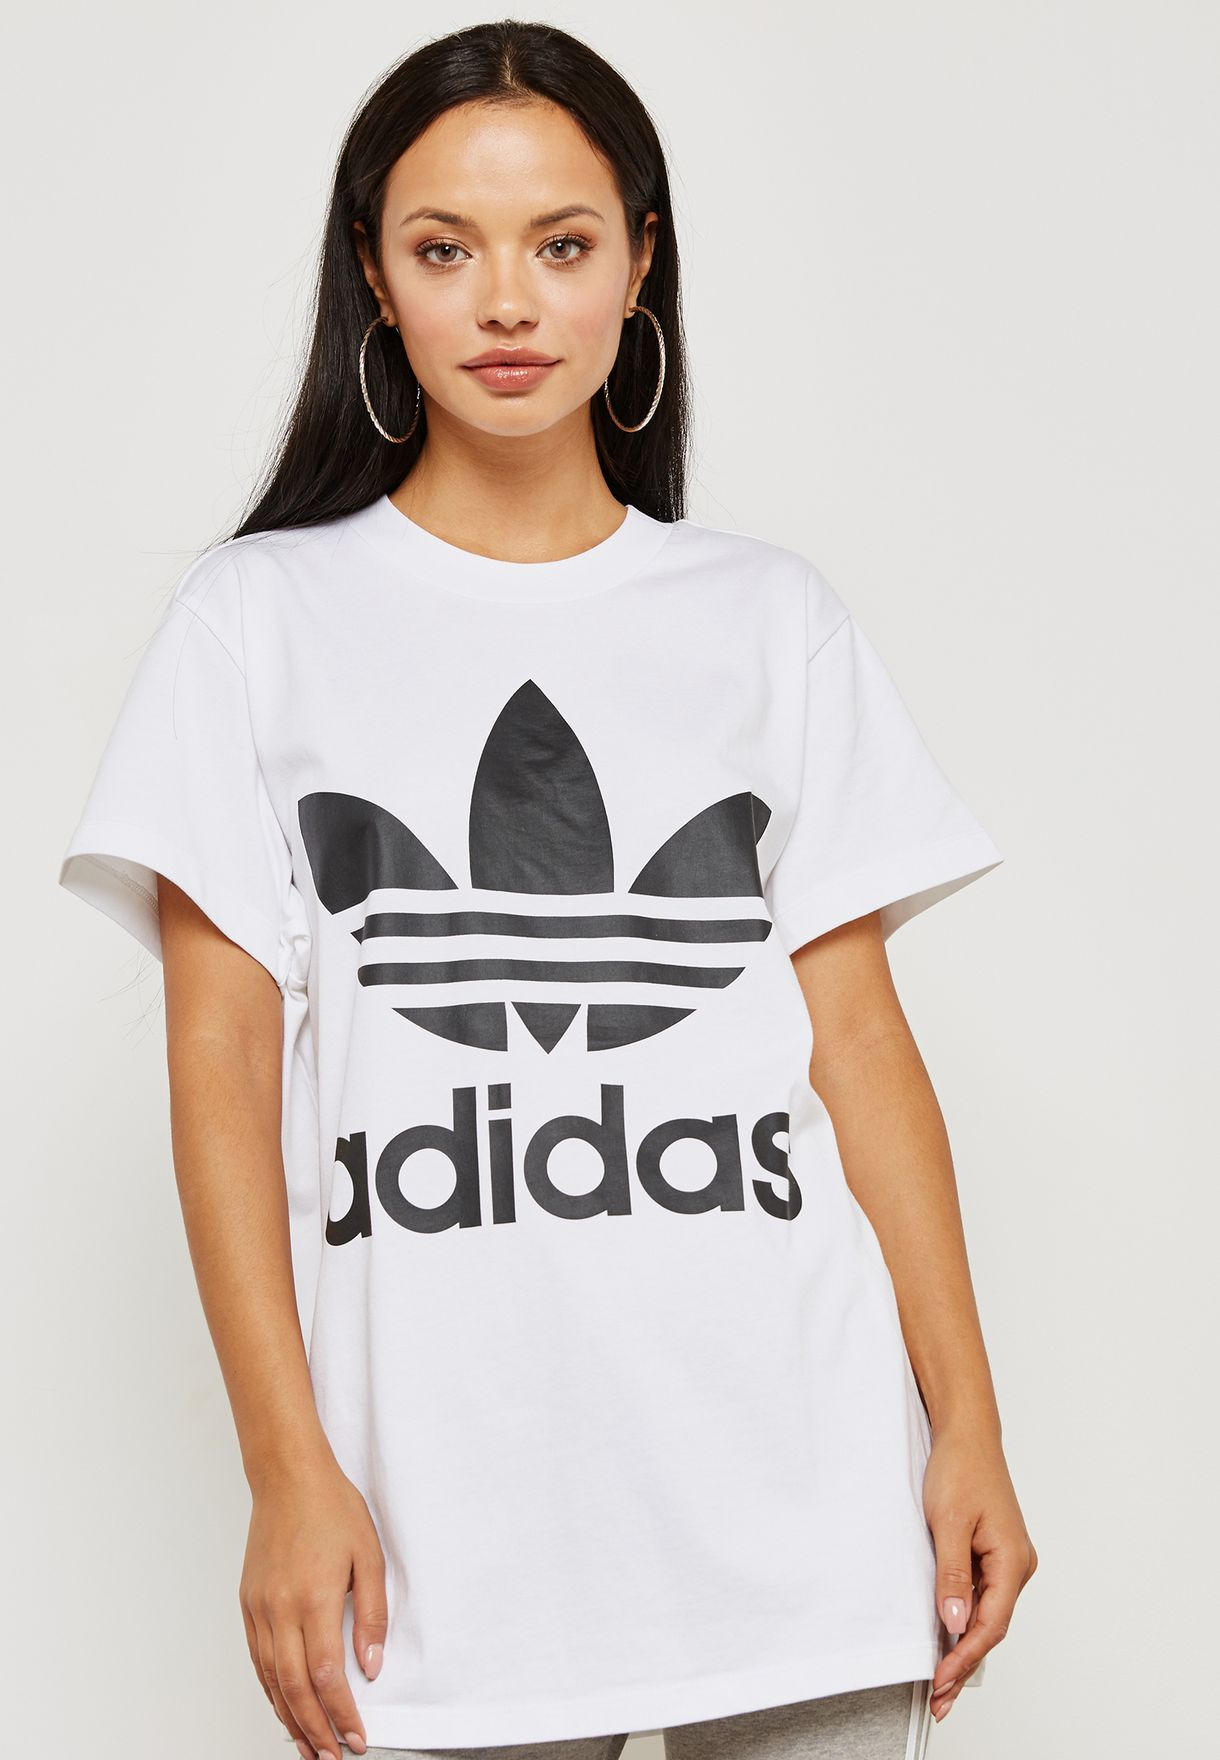 huge selection of 14094 0da16 Shop adidas Originals white adicolor Trefoil T-Shirt DH3160 for Women in  Kuwait - AD478AT54YBX